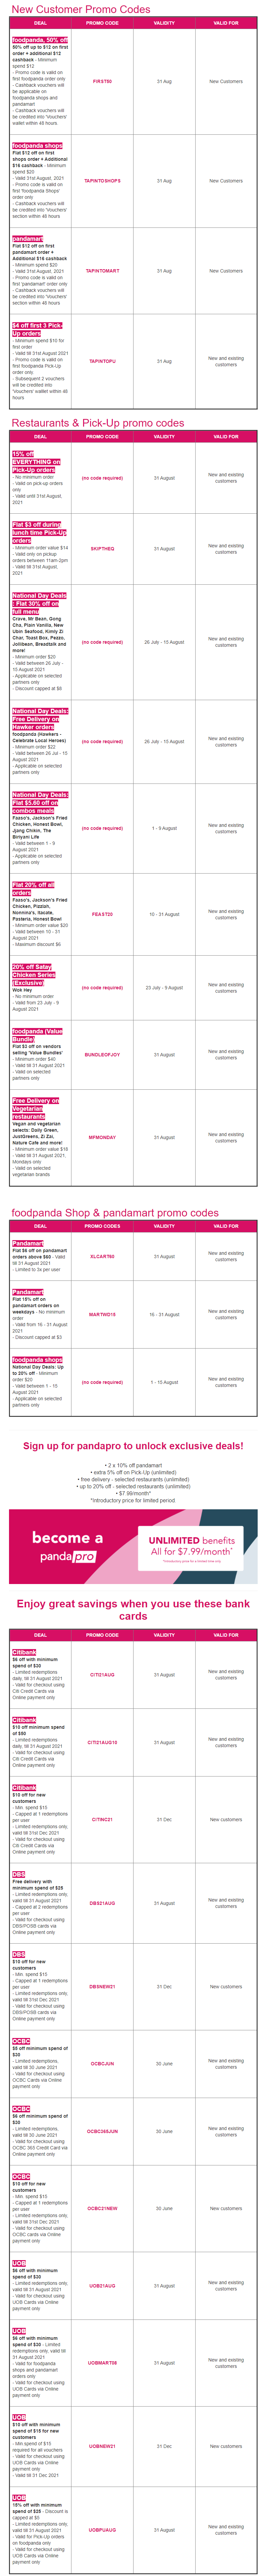 22 foodpanda promo codes for use this month (August 2021)